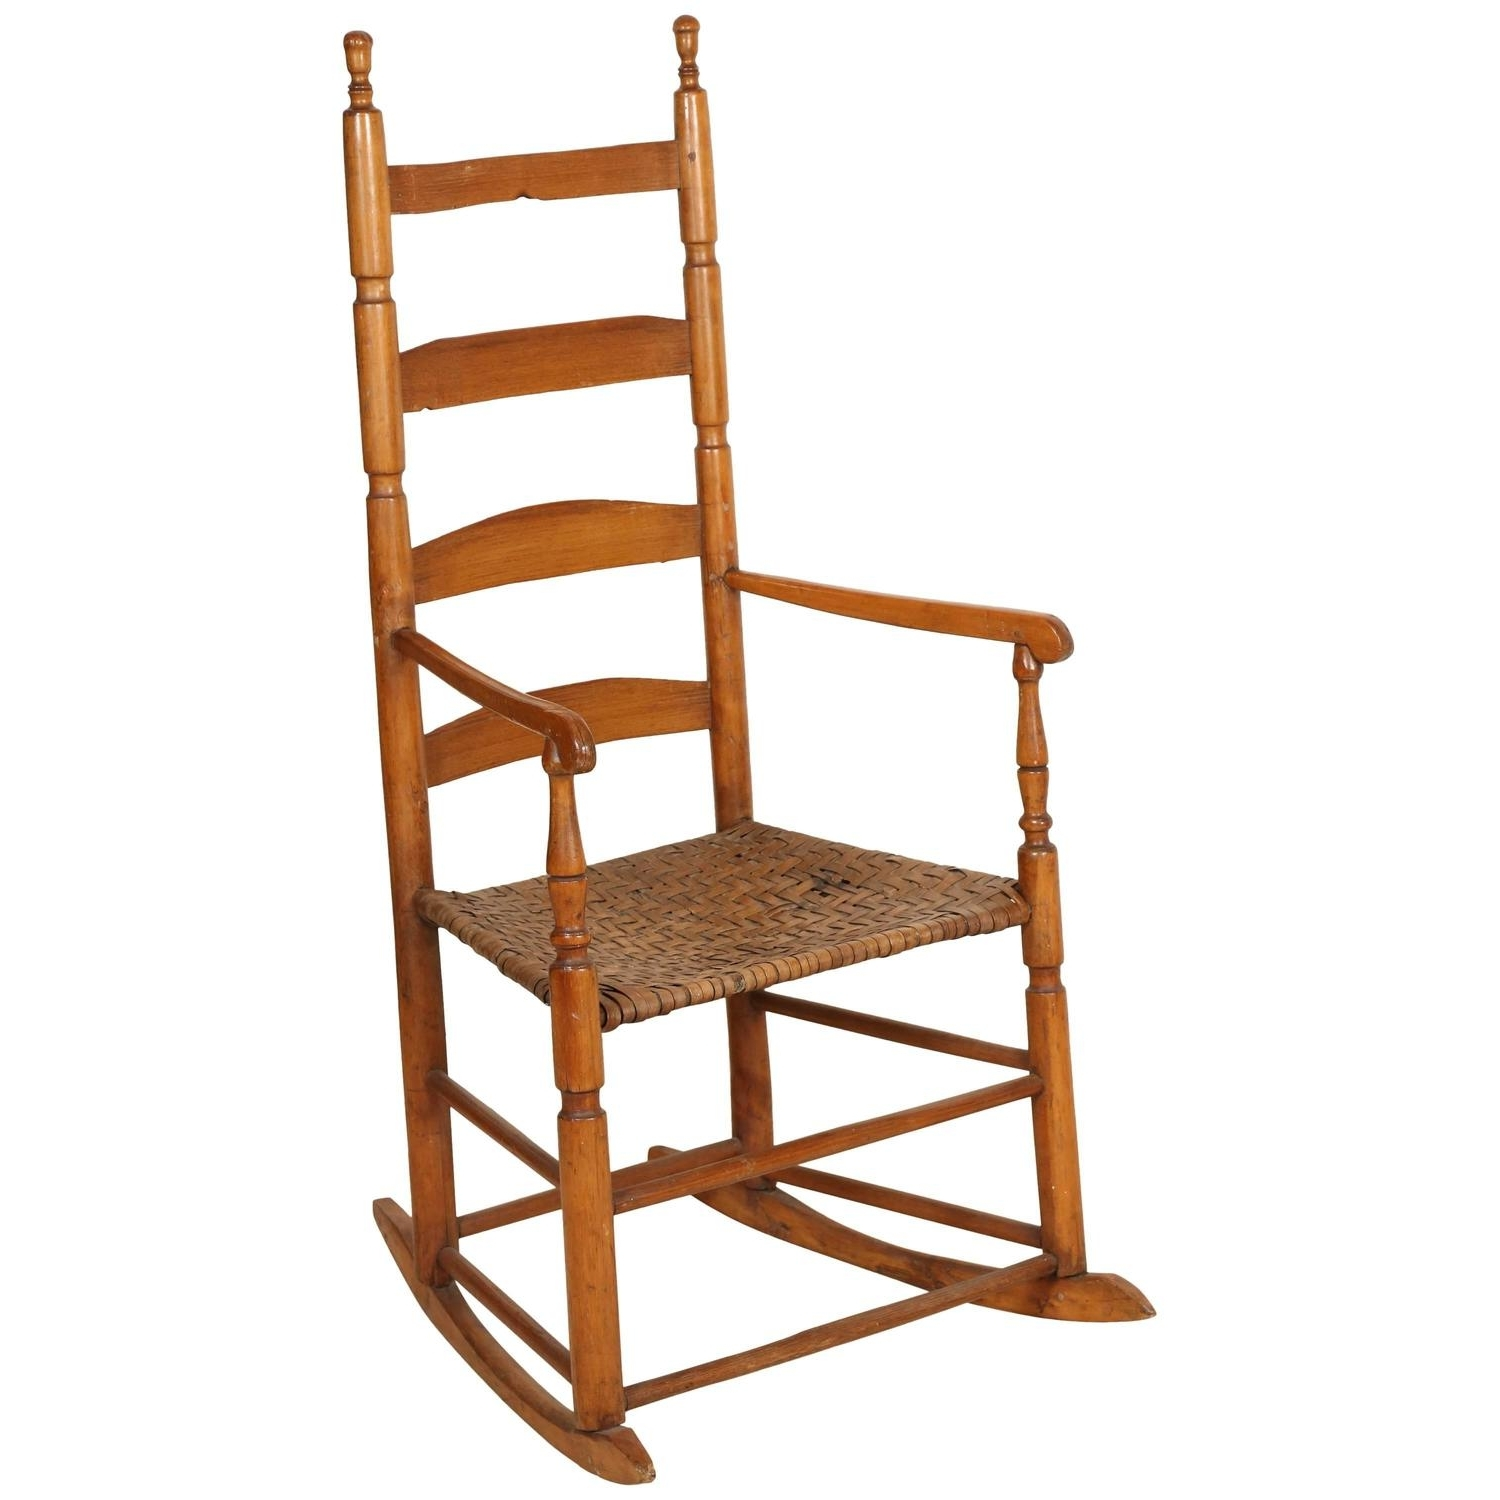 High Back Rocking Chairs Pertaining To Current Ladder High Back Rocking Chair For Sale At 1Stdibs (View 10 of 20)